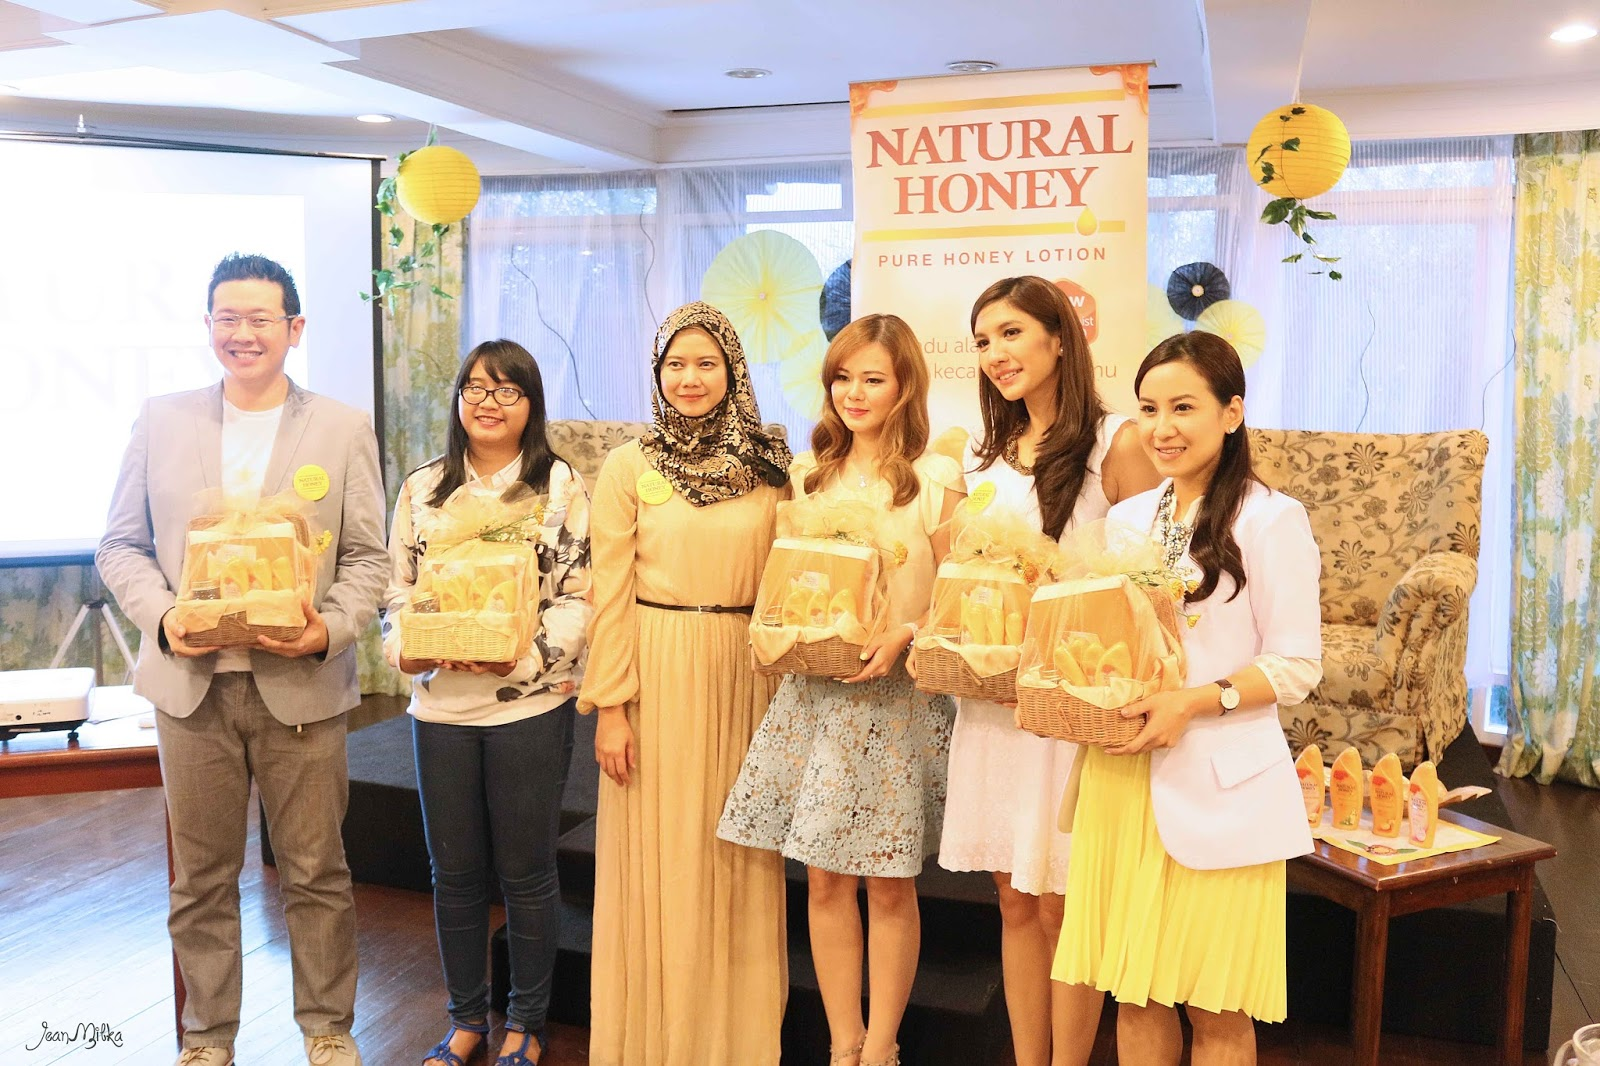 beauty trip, jean milka, natural honey, honey, indonesian, blogger